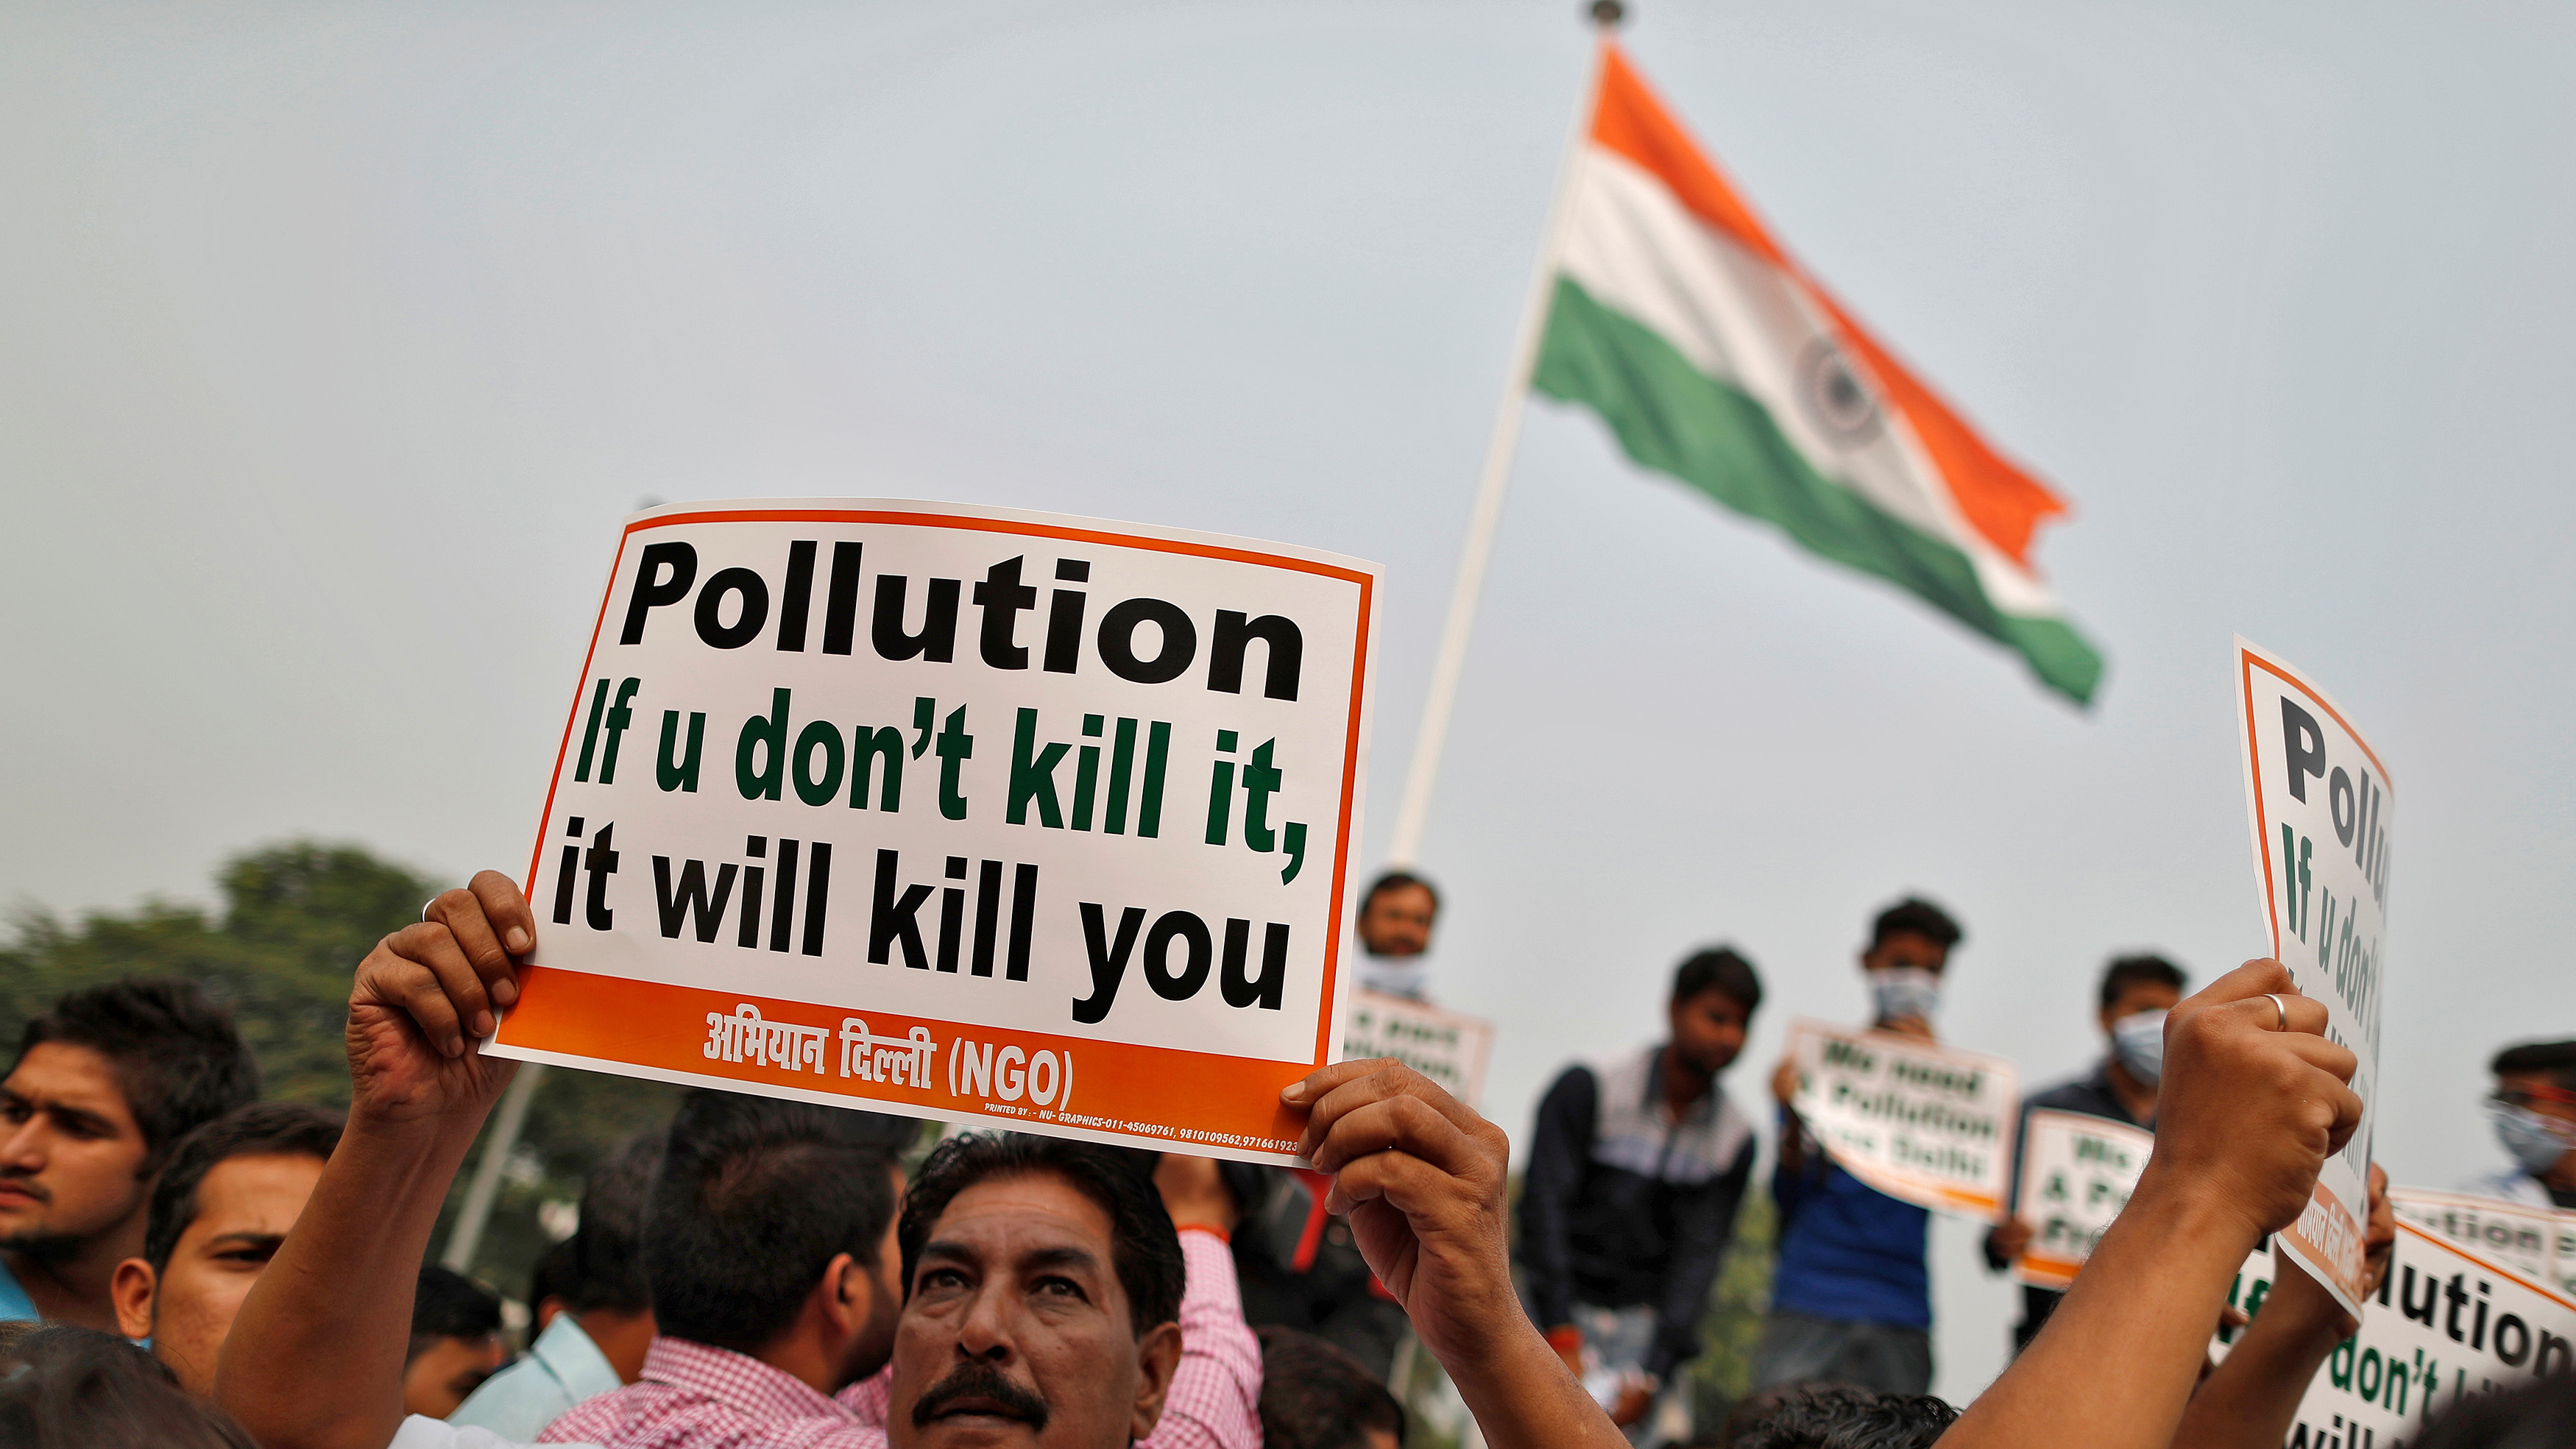 A man holds a poster during a protest against pollution in Delhi, India November 7, 2016. REUTERS/Cathal McNaughton - D1BEULLHZZAA